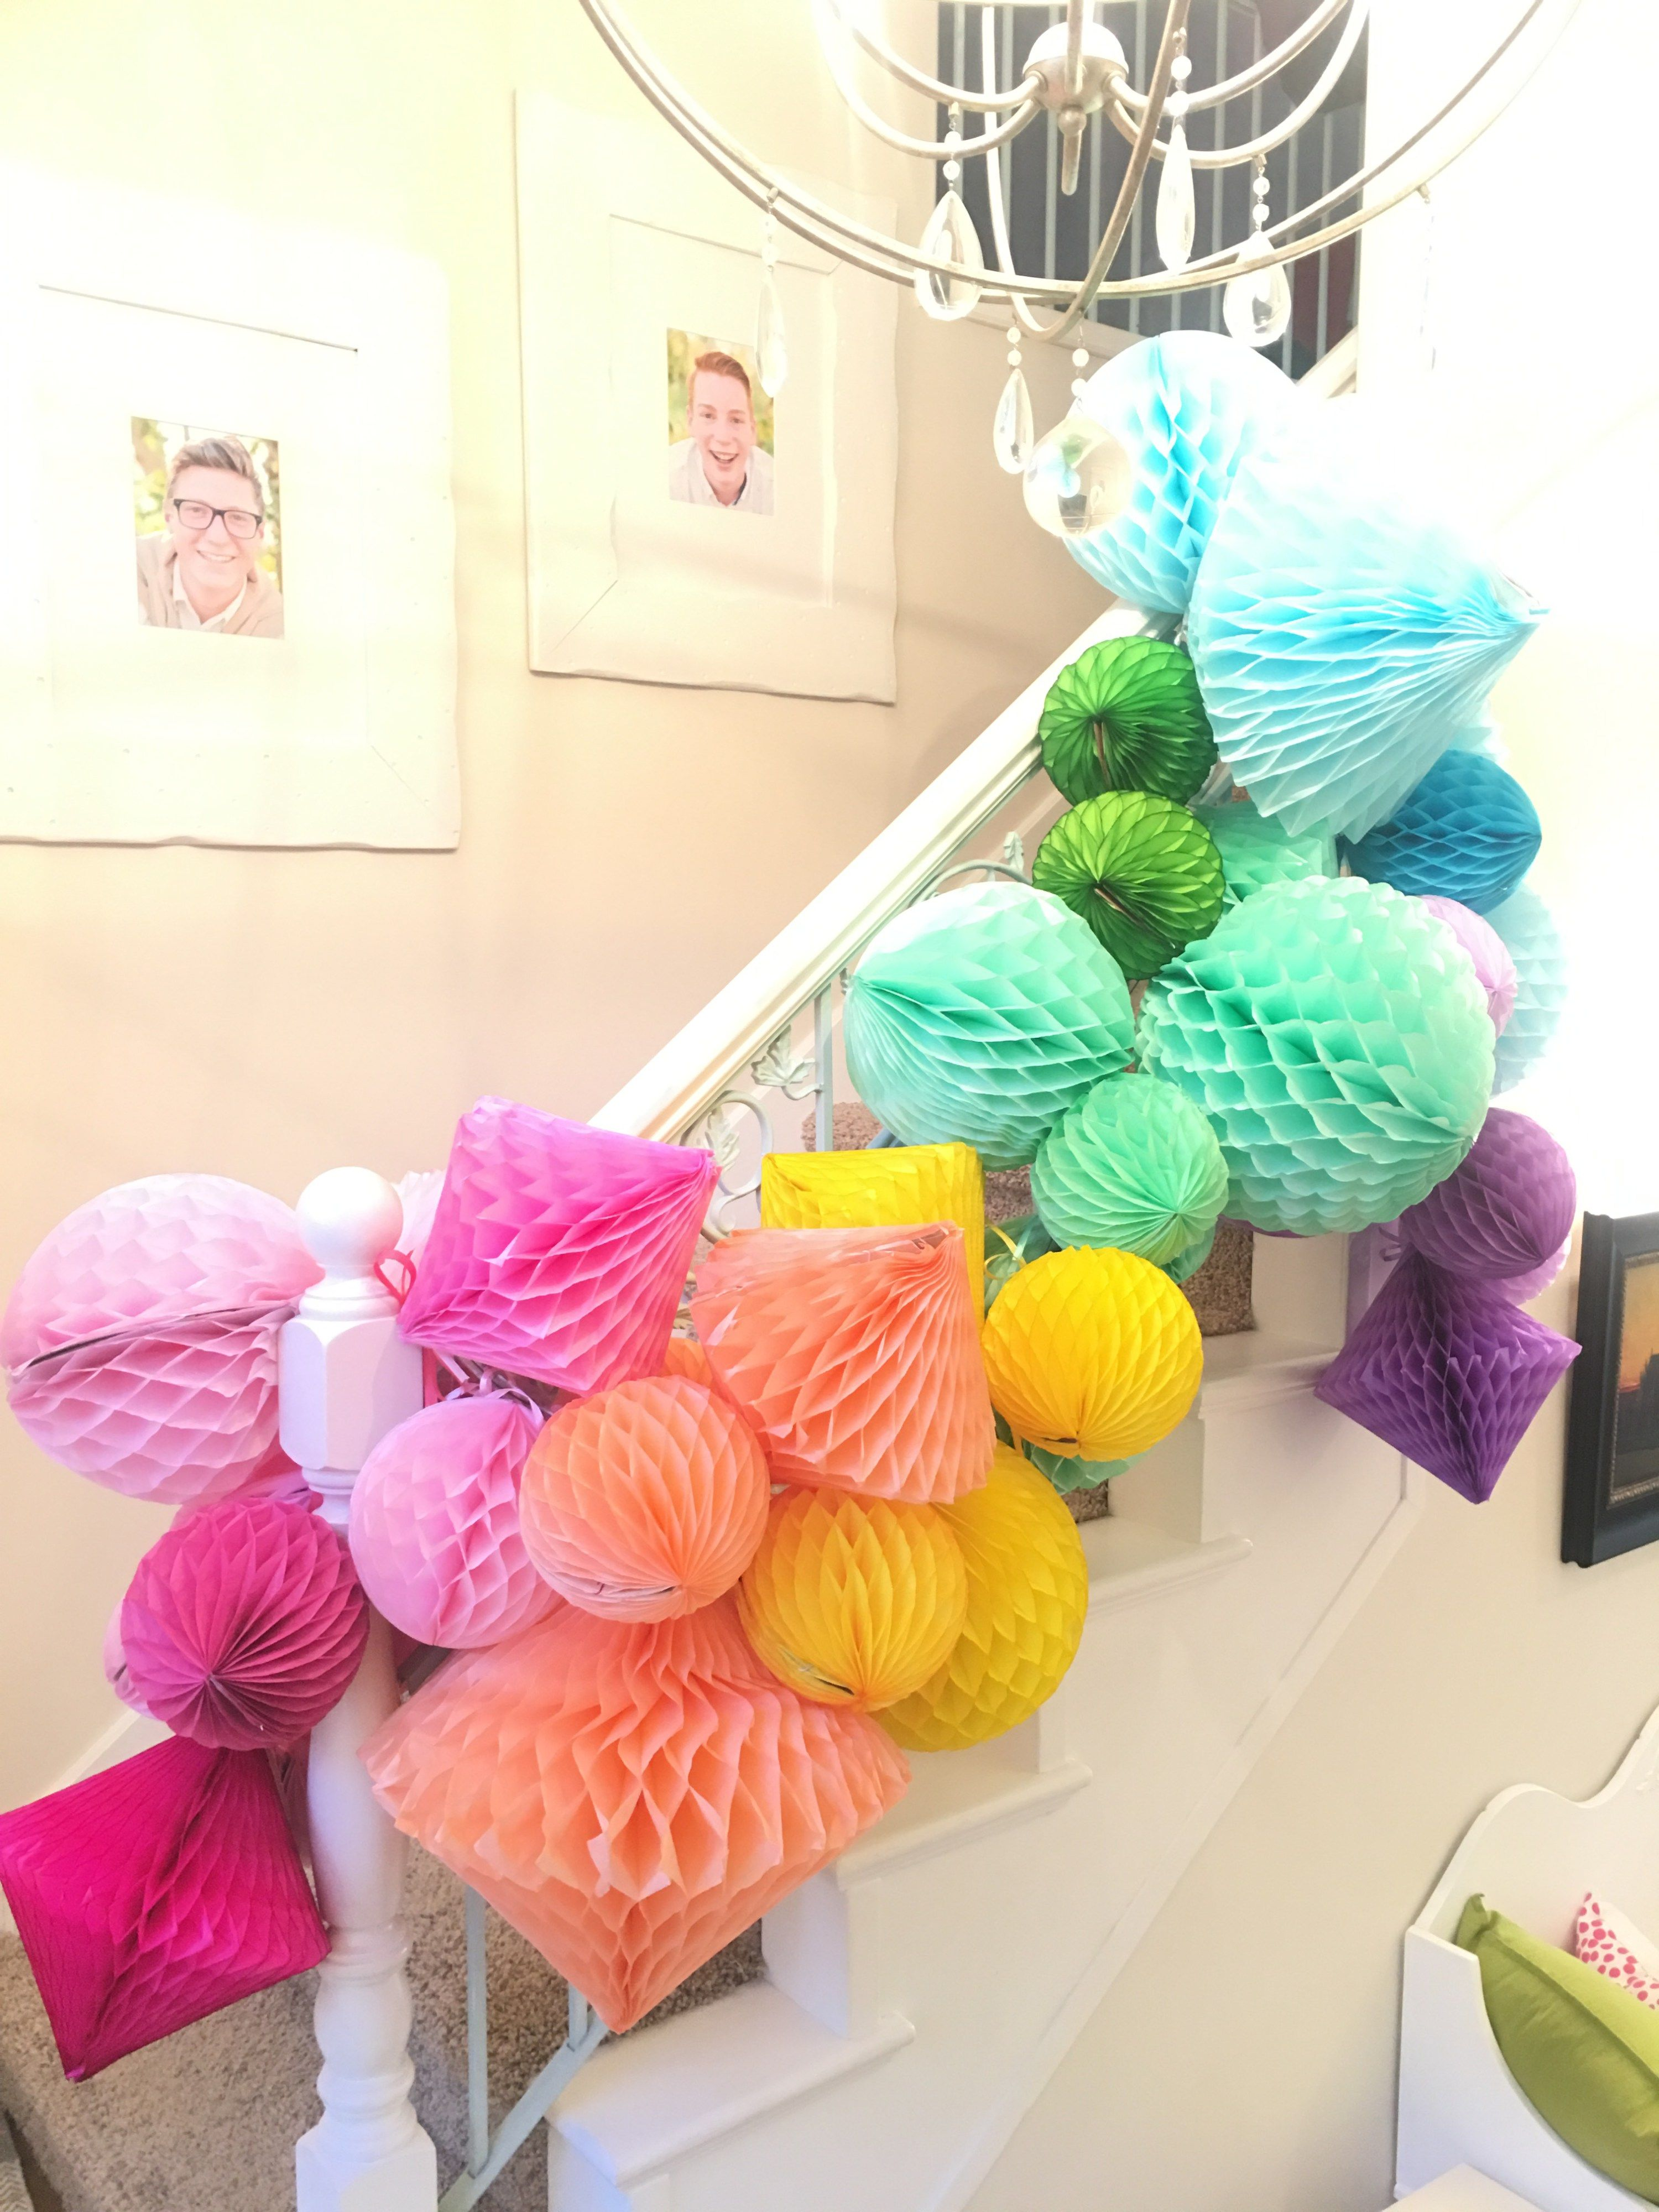 How To Make Giant Party Decor Using Honeycomb Balls The Glitzy Pear Paper Party Decorations Kids Party Decorations Tissue Paper Decorations